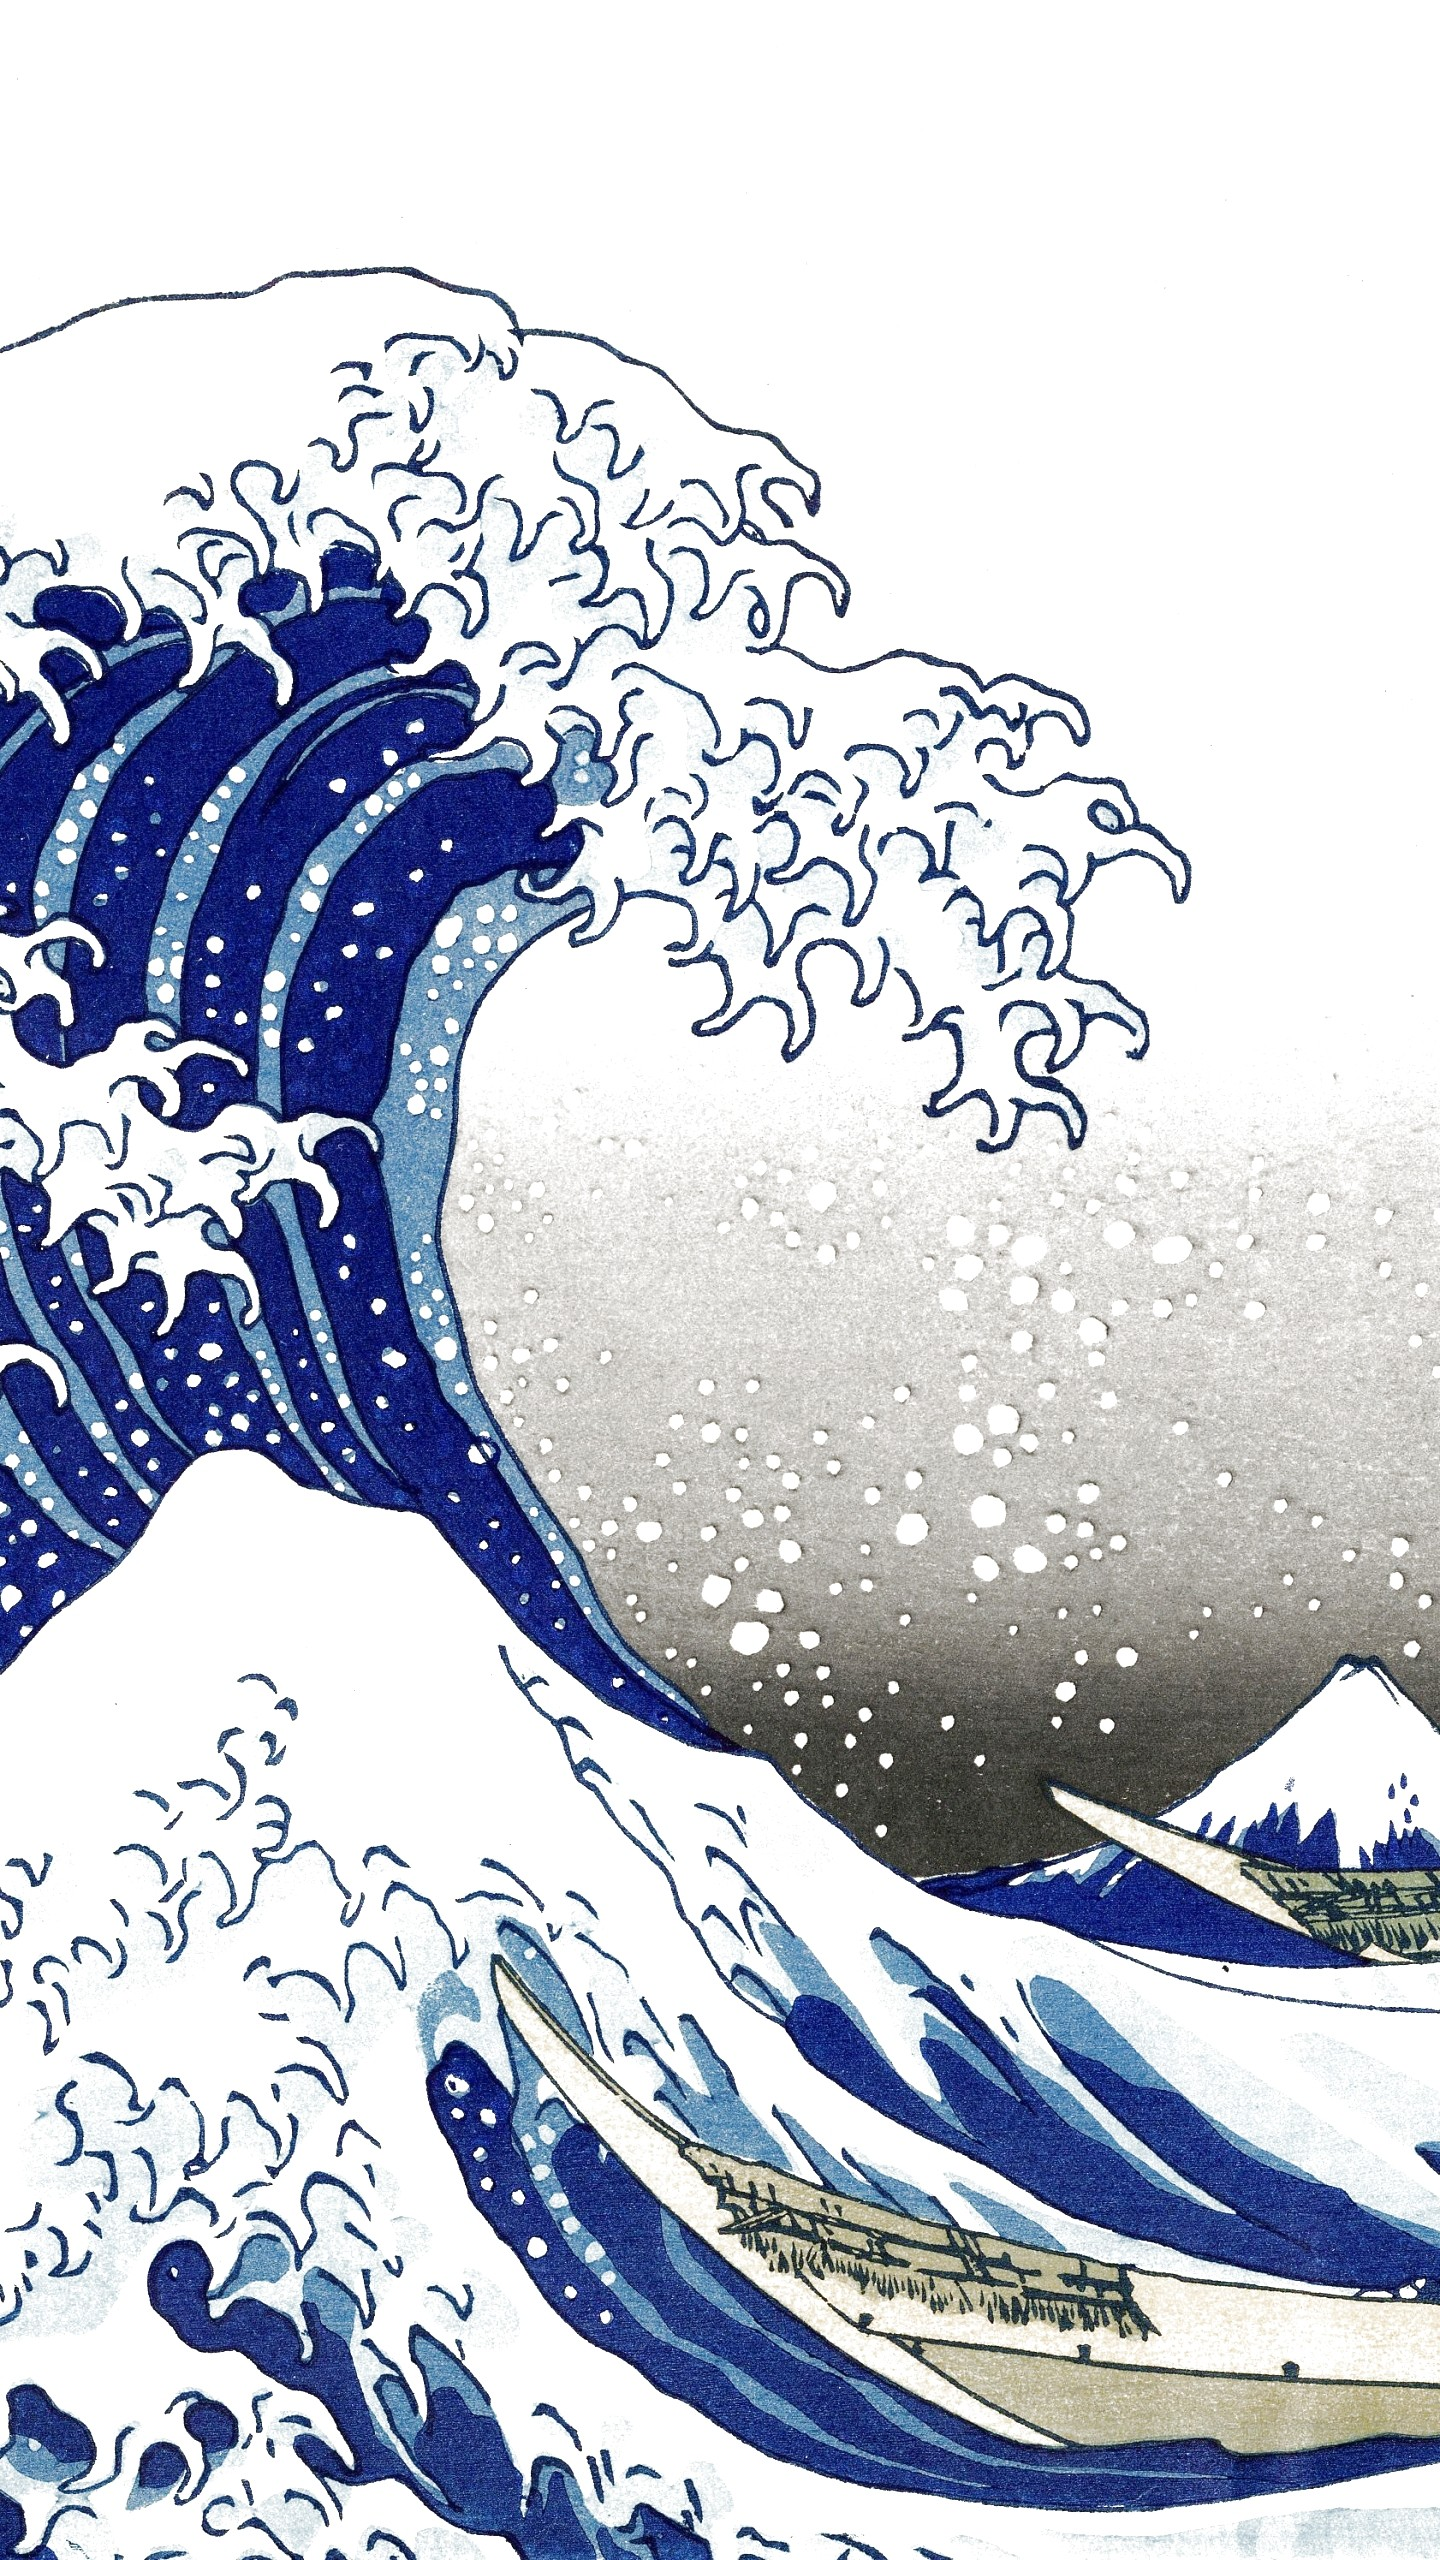 3200x1080 Wallpaper Title Great Wave Off Kanagawa 9 Category Art Creative Wallpapers Tags For